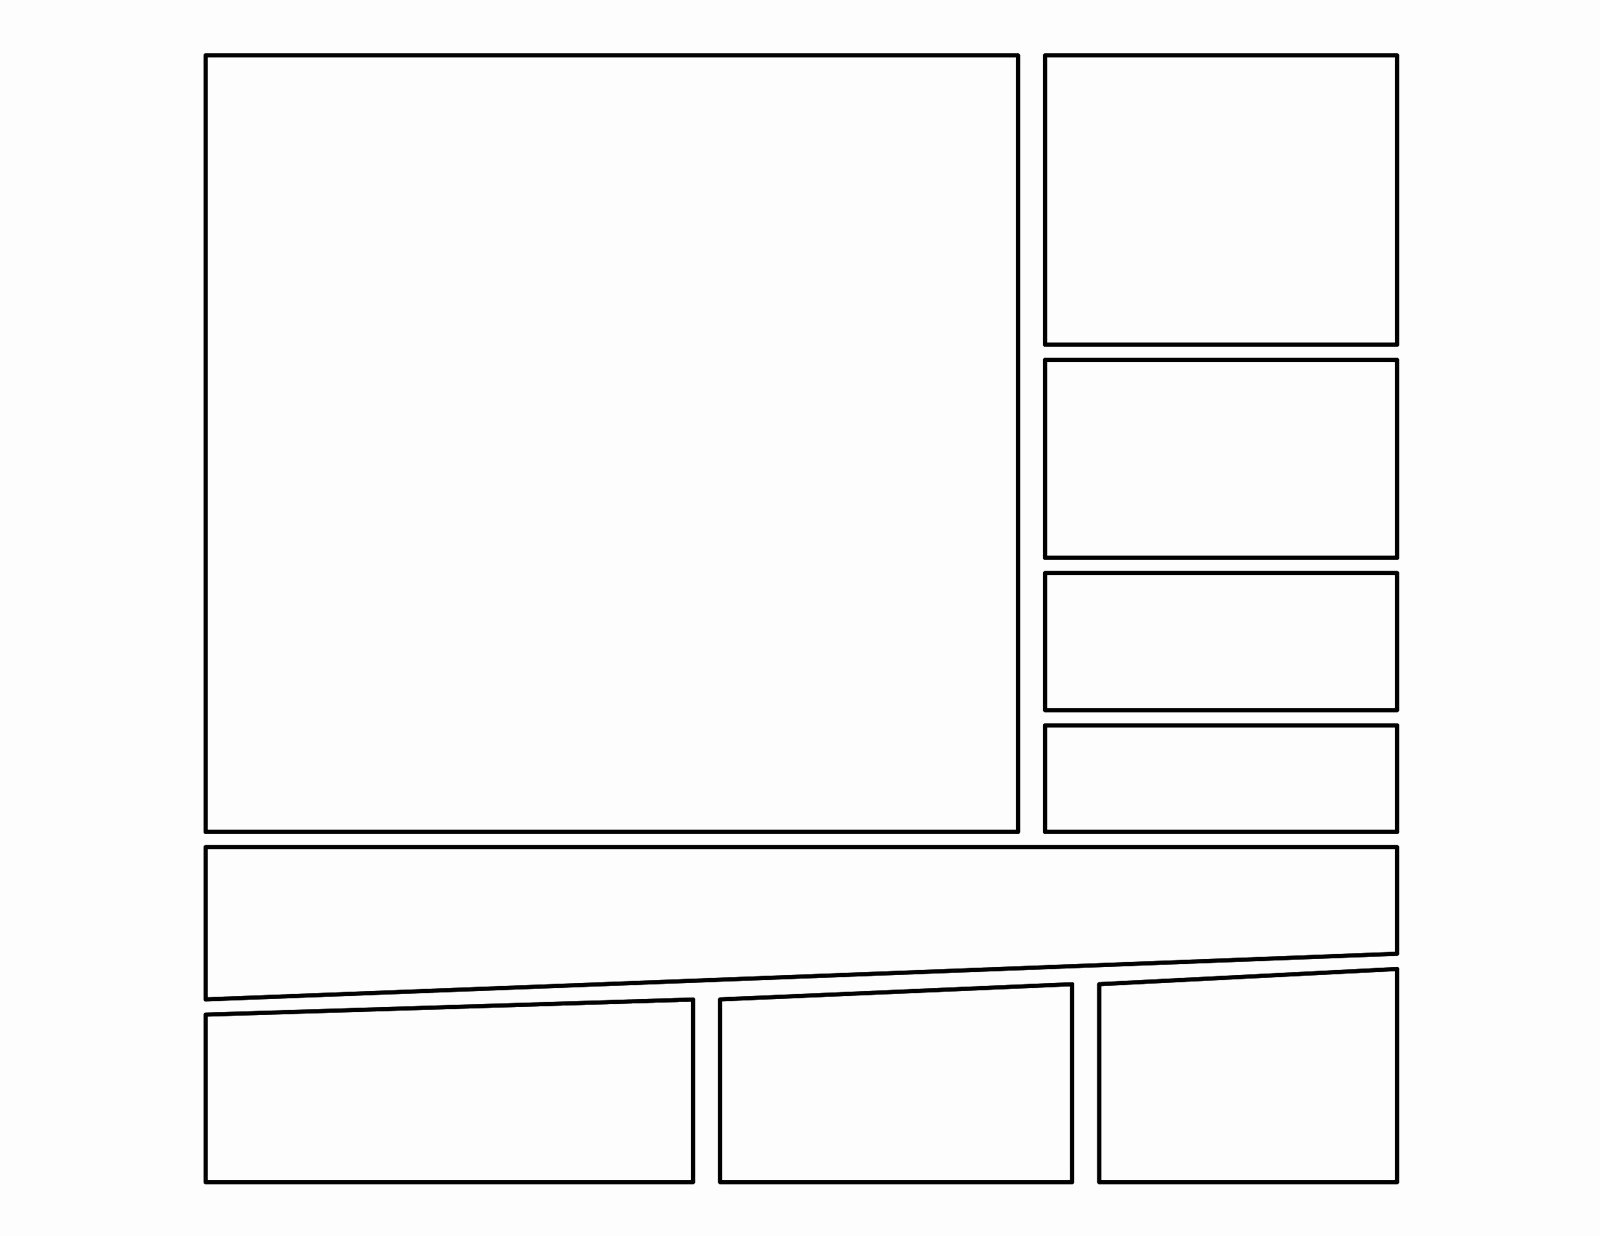 4 Square Writing Template Inspirational 3rd Grade Second Batch Of Ic Templates